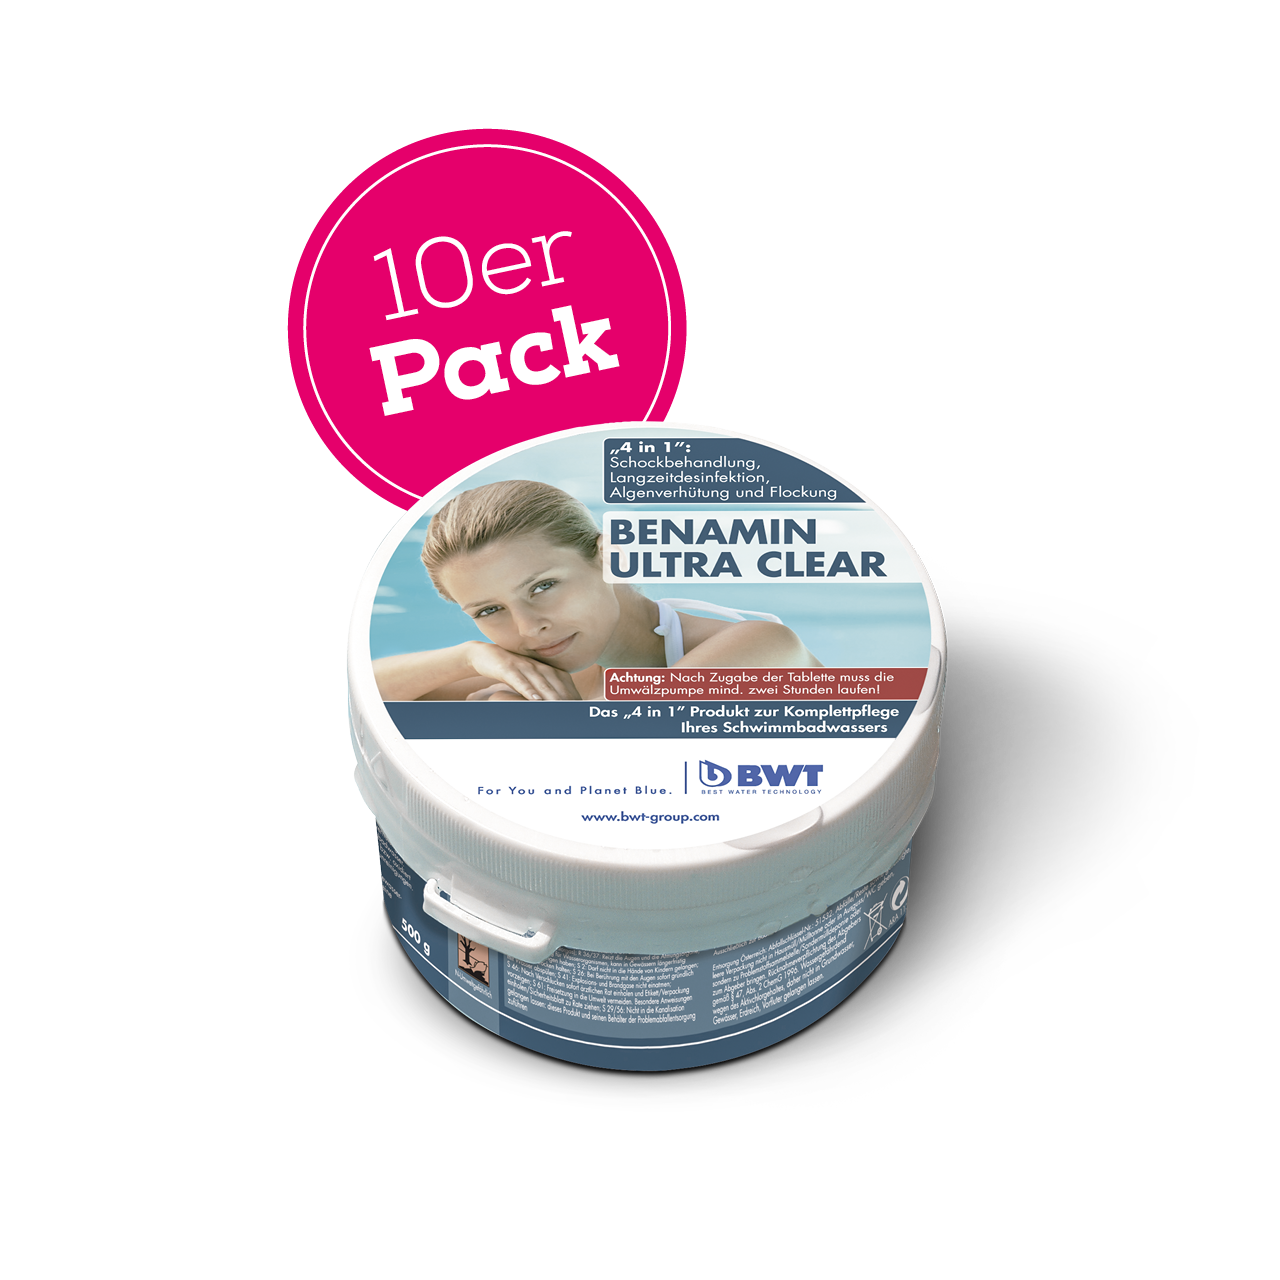 Benamin Ultra Clear 10er Pack